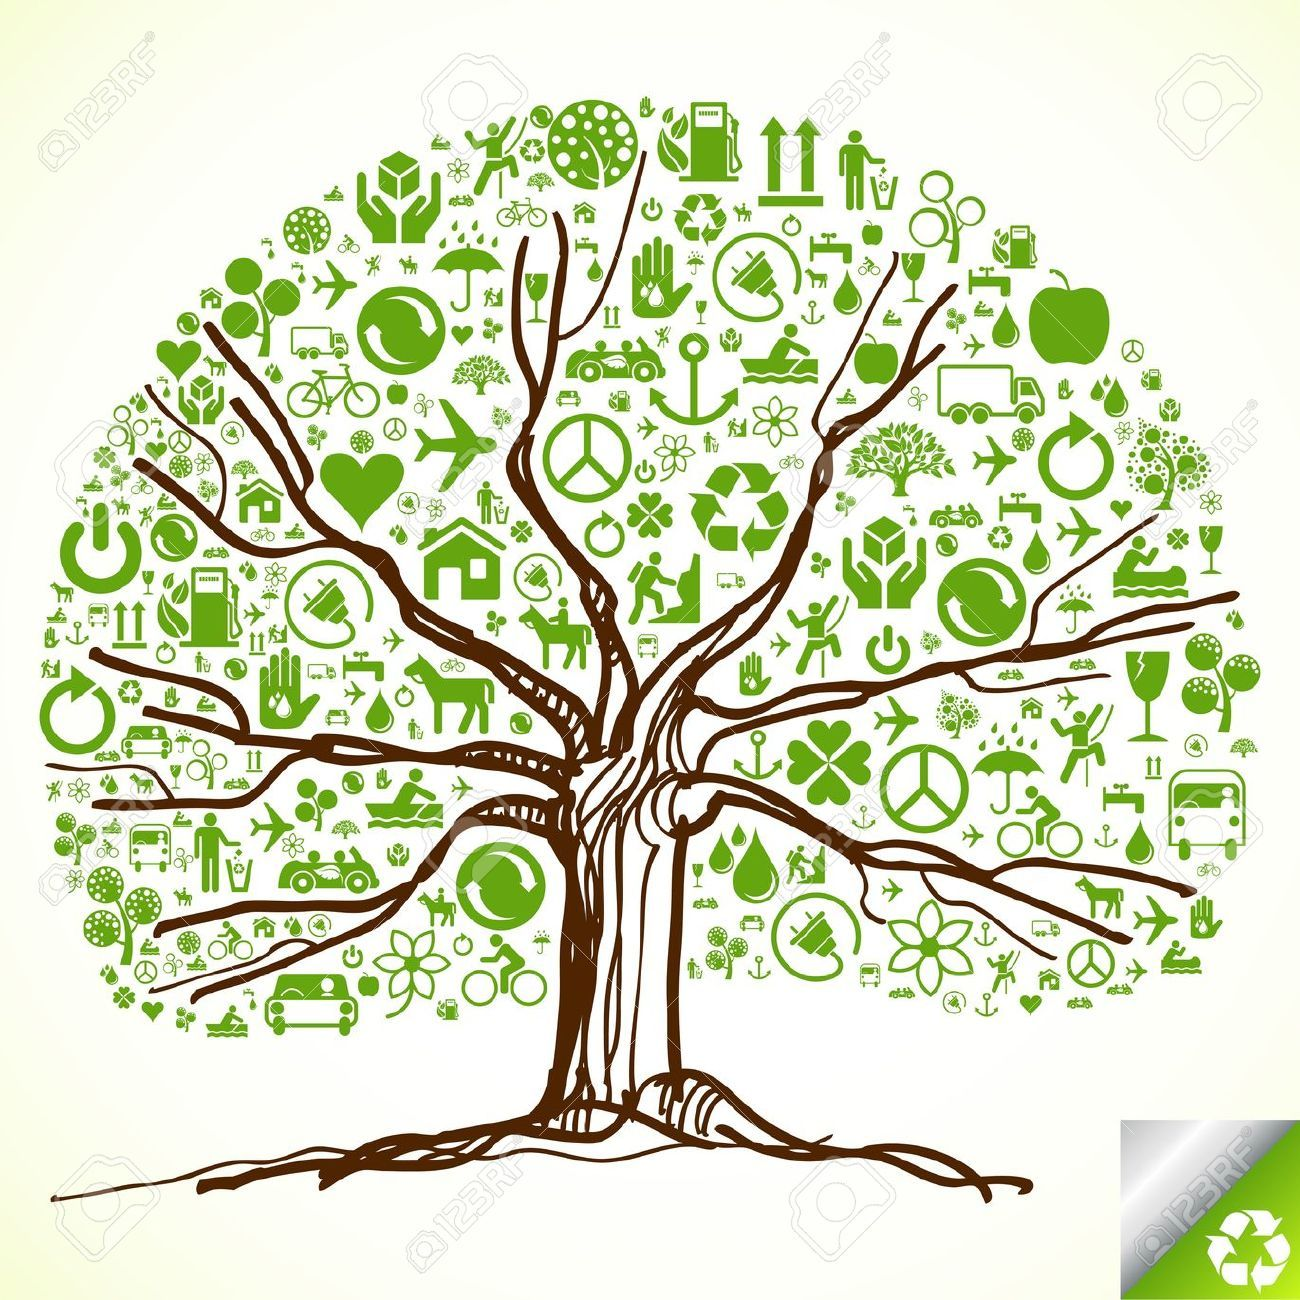 10339399-Animated-ecology-tree-made-of-ecological-icons-Stock-Vector ...